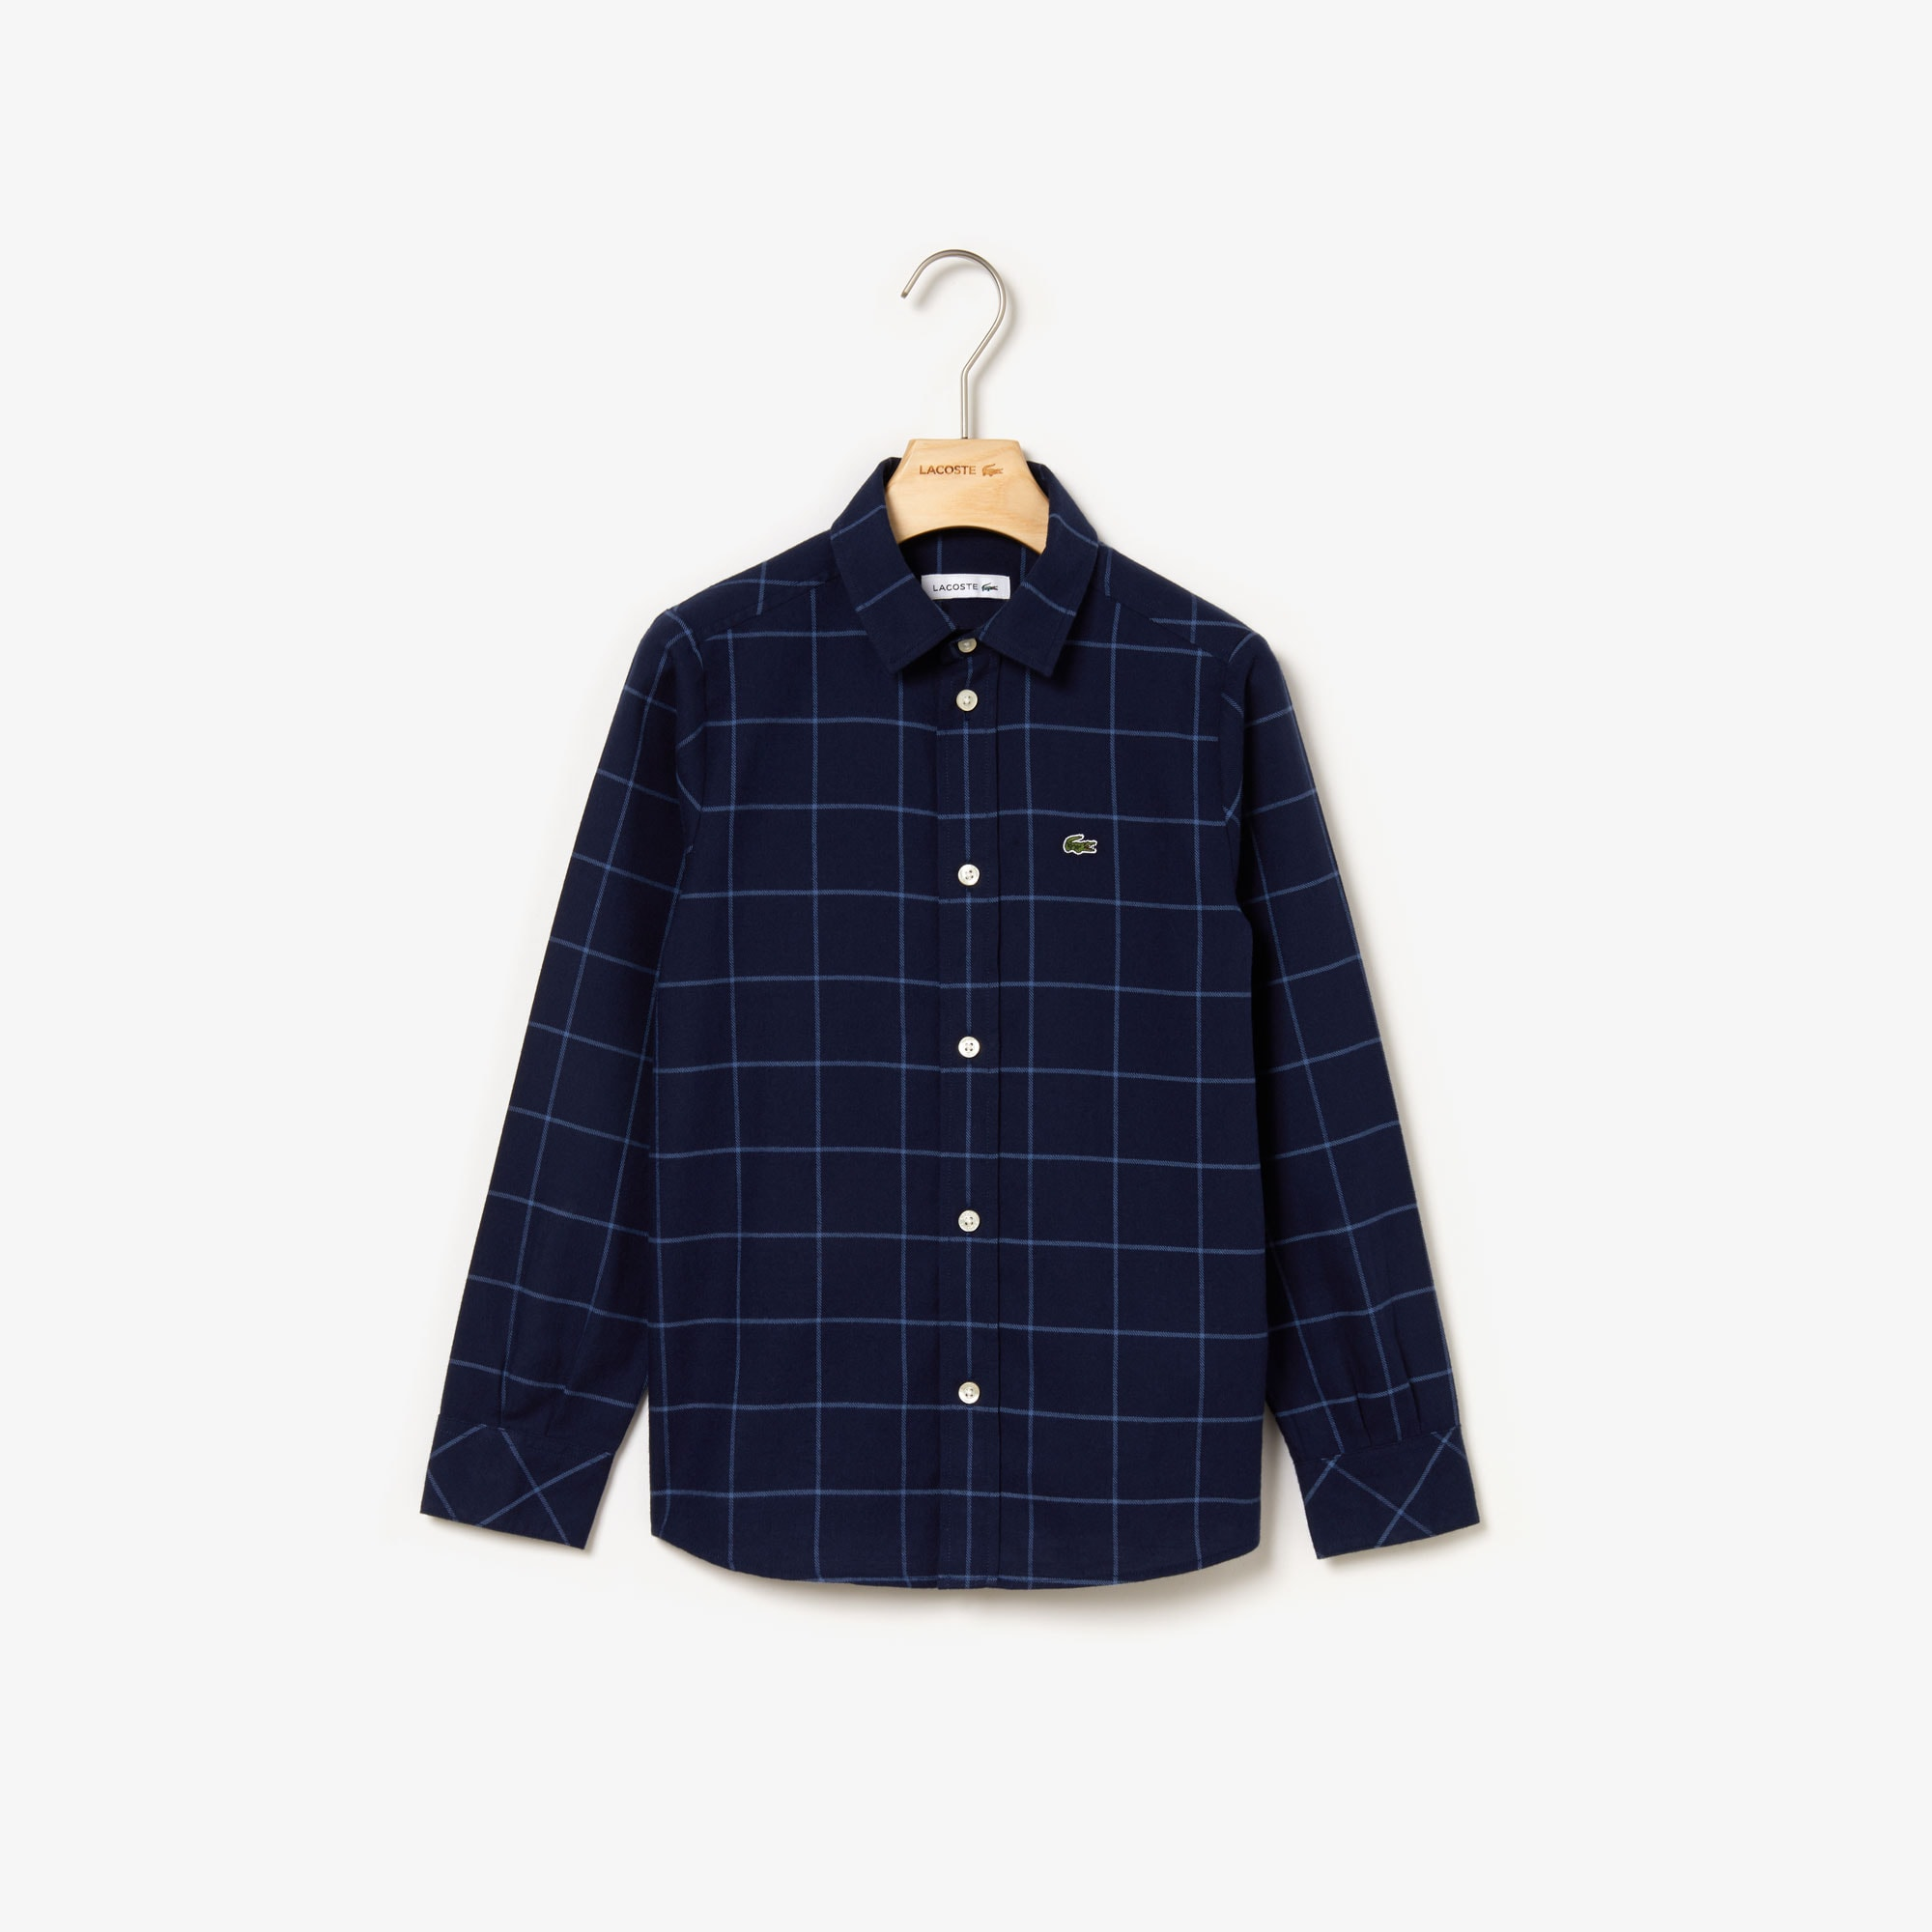 Lacoste Tops Boys' Check Flannel Shirt